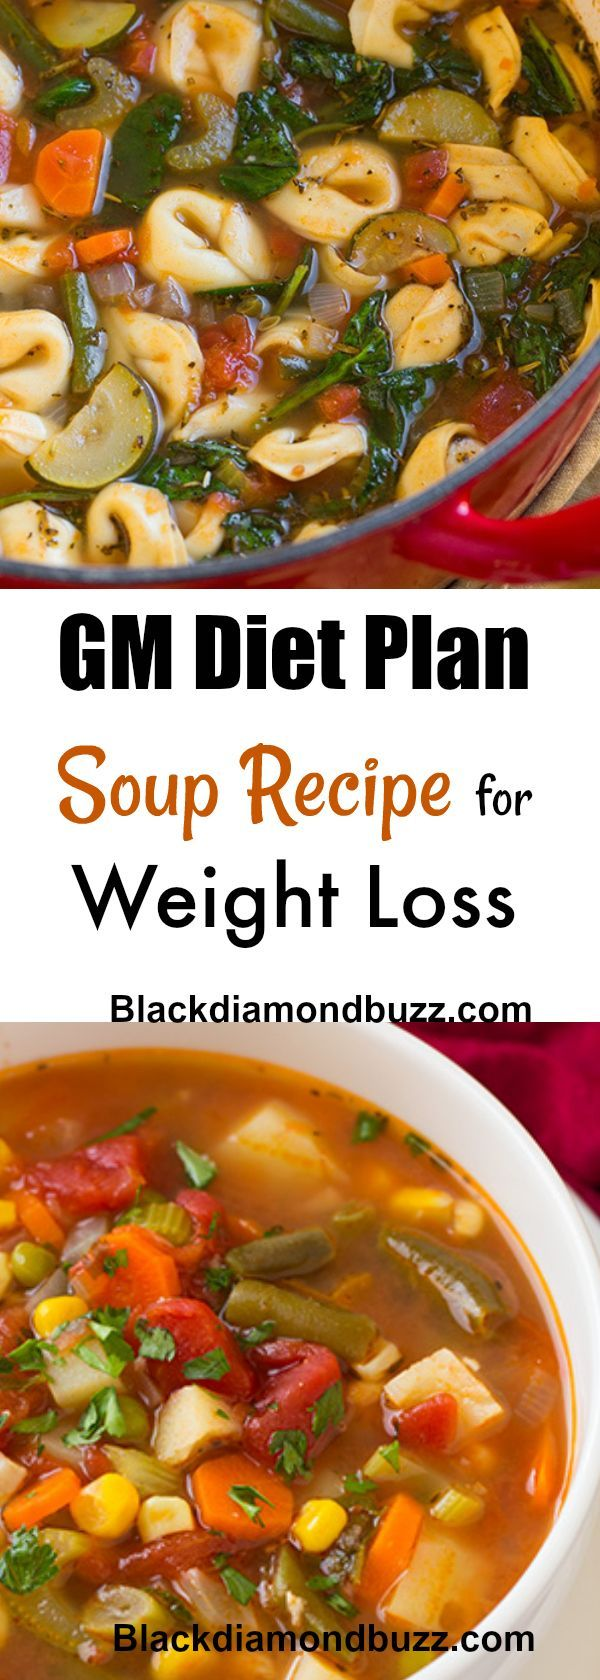 What is a good meal plan for weight loss